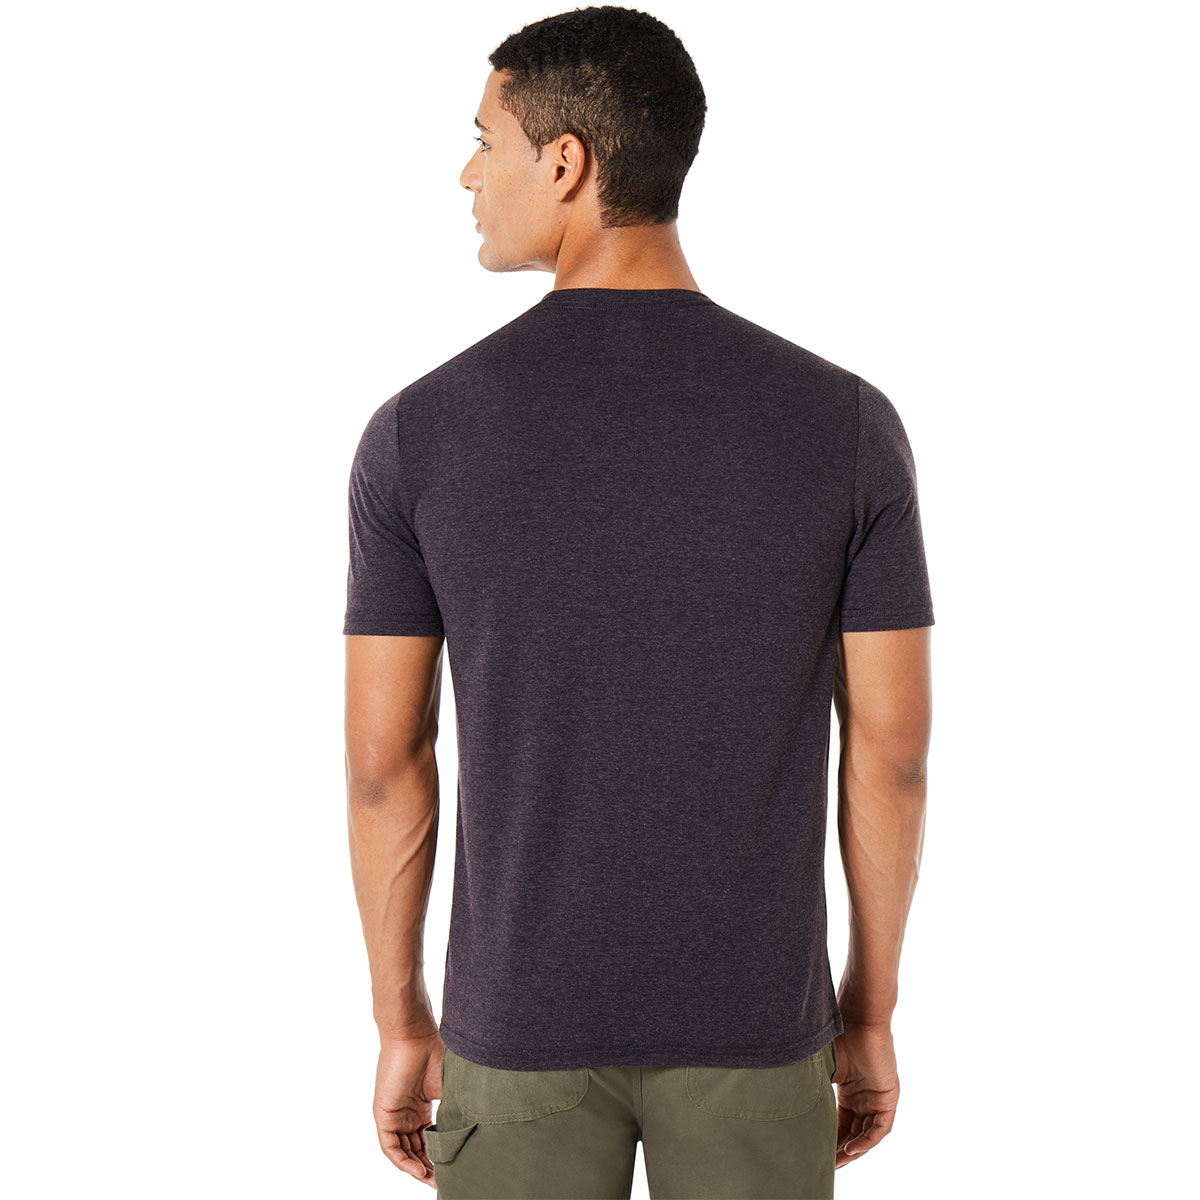 Lunettes Homme O-gras Ellipse ohydrolix Moisture Wicking T-shirt 32/% off RRP